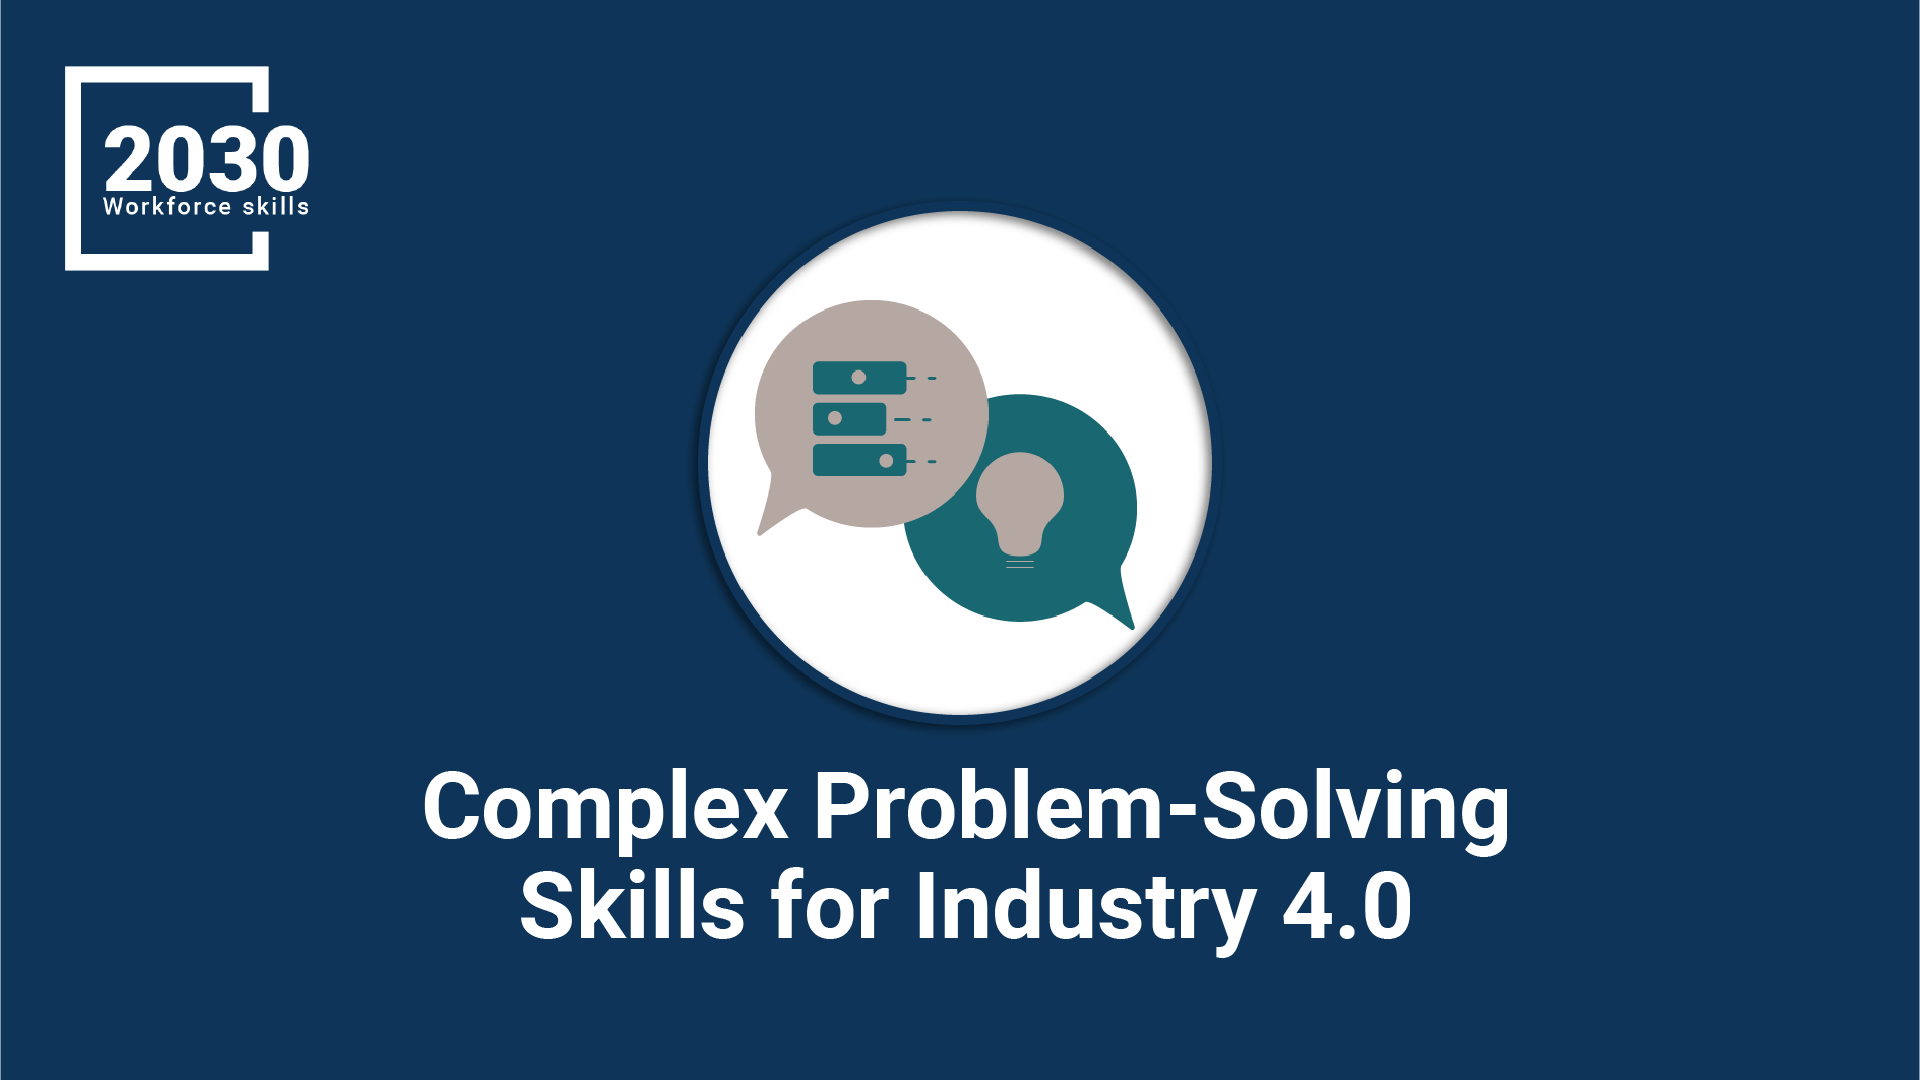 https://omnistackconnect.omnihrc.com/product/complex-problem-solving-skills-for-industry-4-0